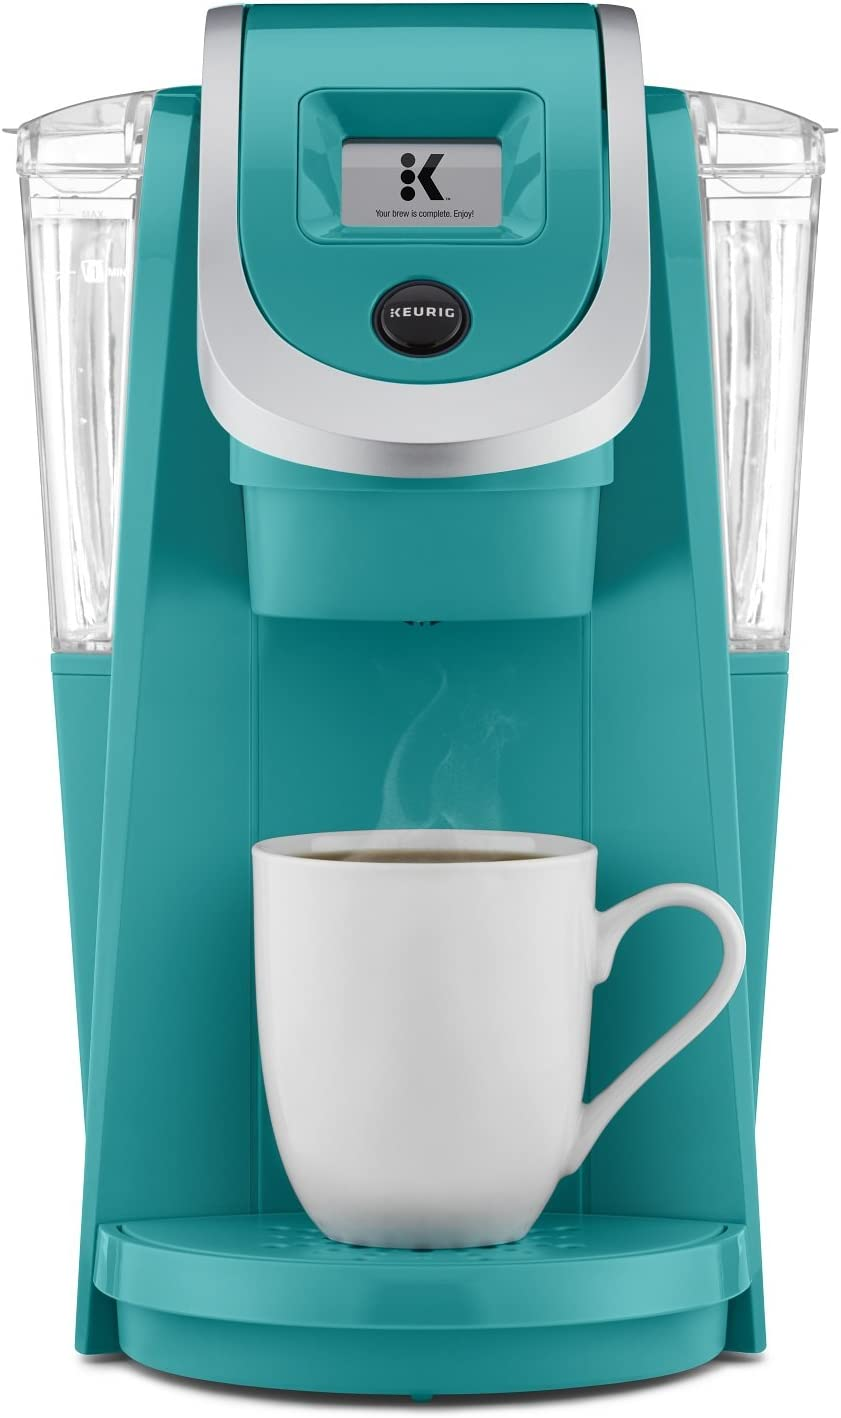 Keurig K250 Coffee Maker, Single Serve K-Cup Pod Coffee Brewer, With Strength Control, Turquoise